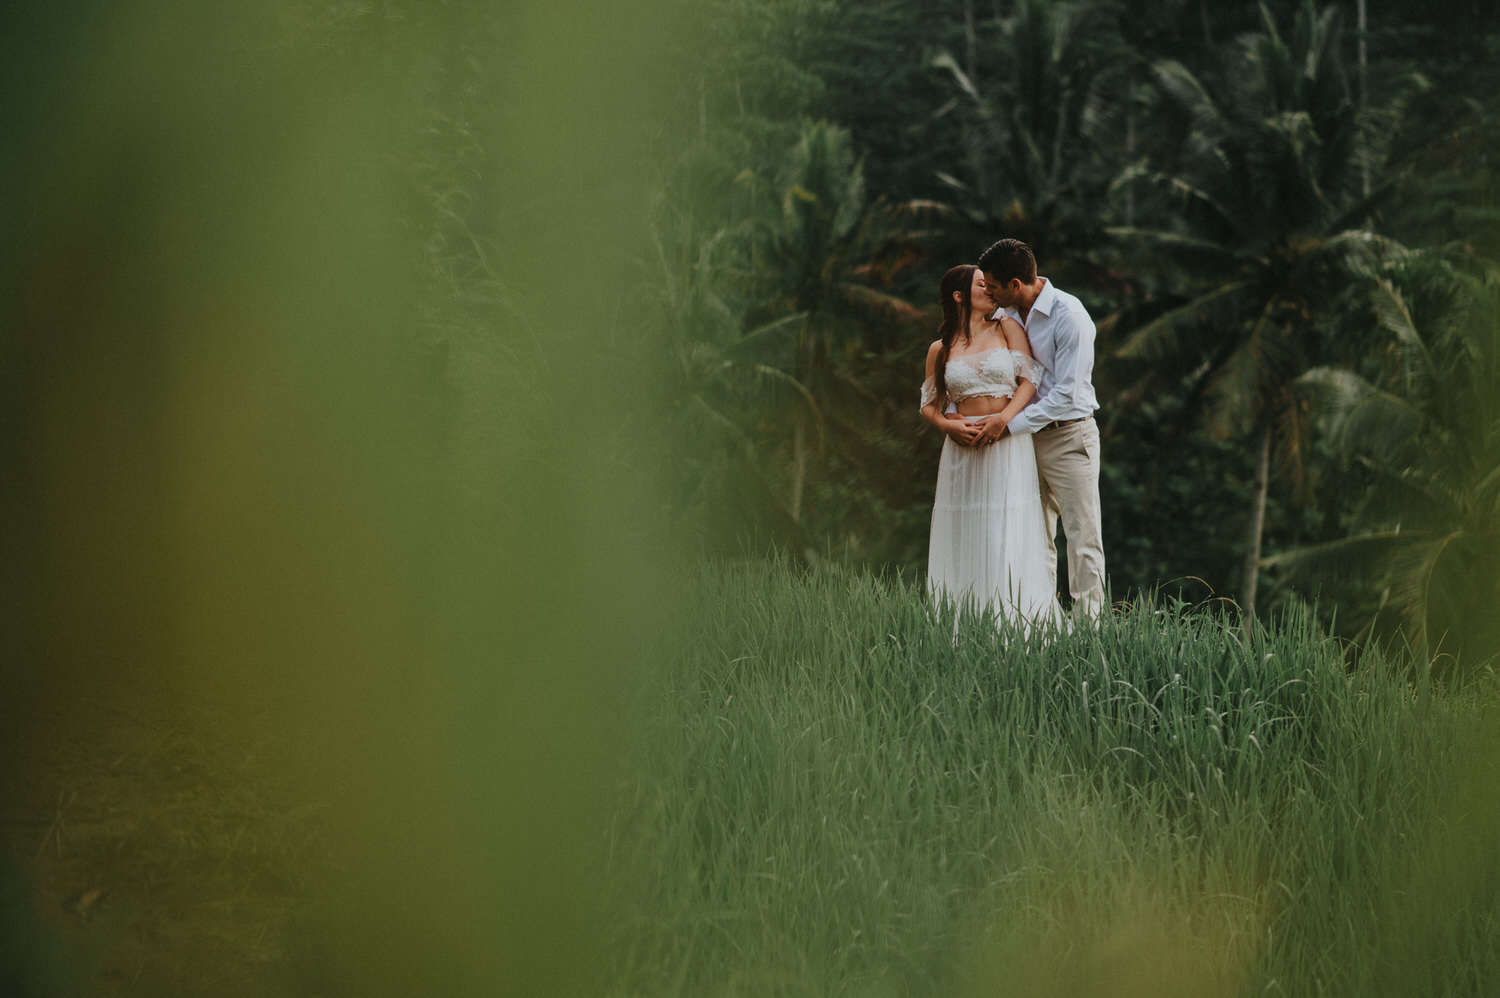 bali wedding - elopement - ubud wedding - diktatphotography - olga + Jason - 7